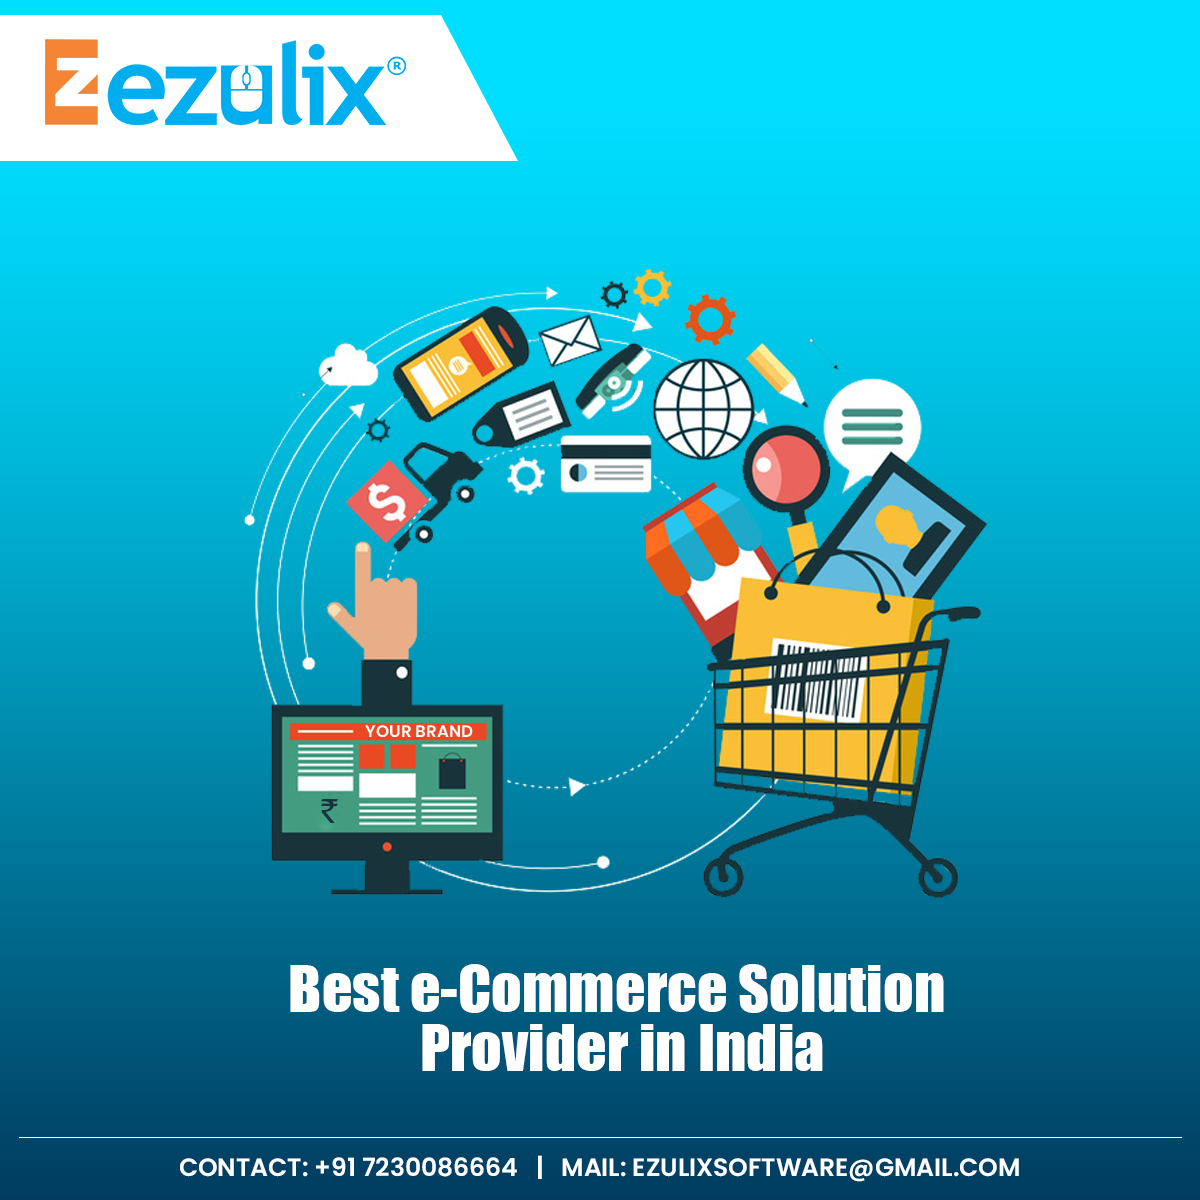 Ezulix - Web Design and Mobile App Development: Who is the